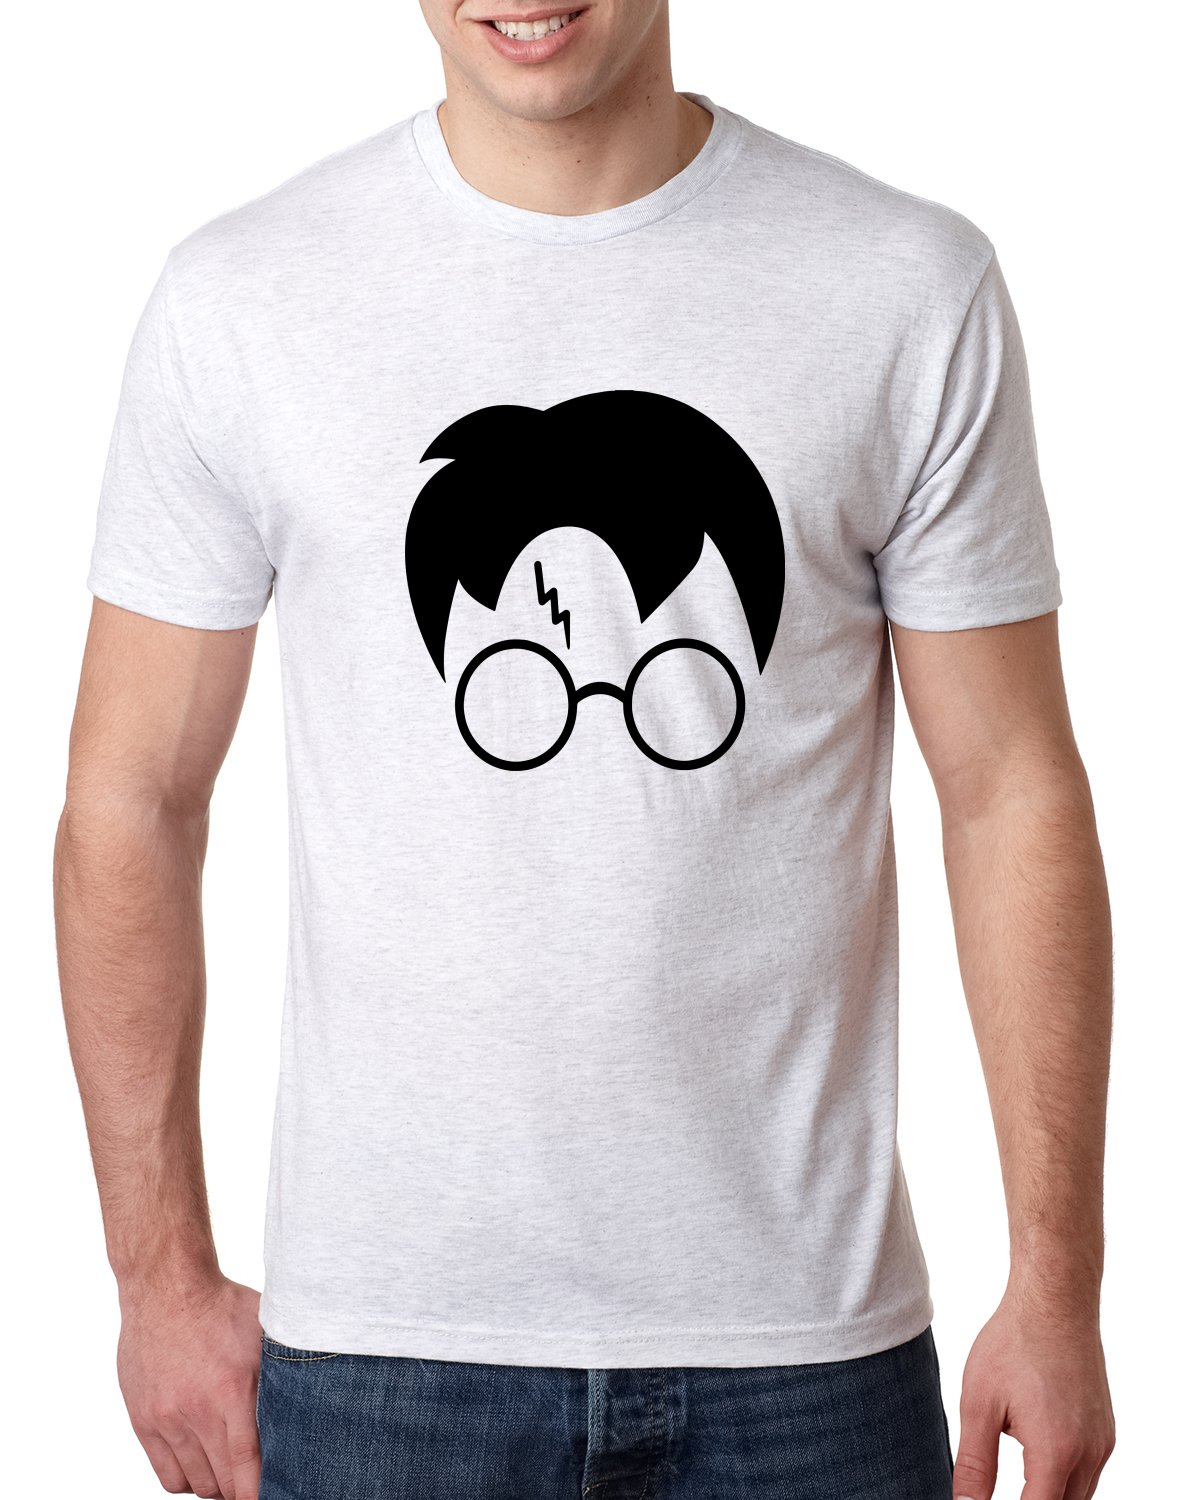 Harry Potter Glasses Lightning Bolt Scar Hair | Mens Pop Culture Premium Tri Blend Tee Graphic T-Shirt, Heather White Black, Large by Wild Bobby